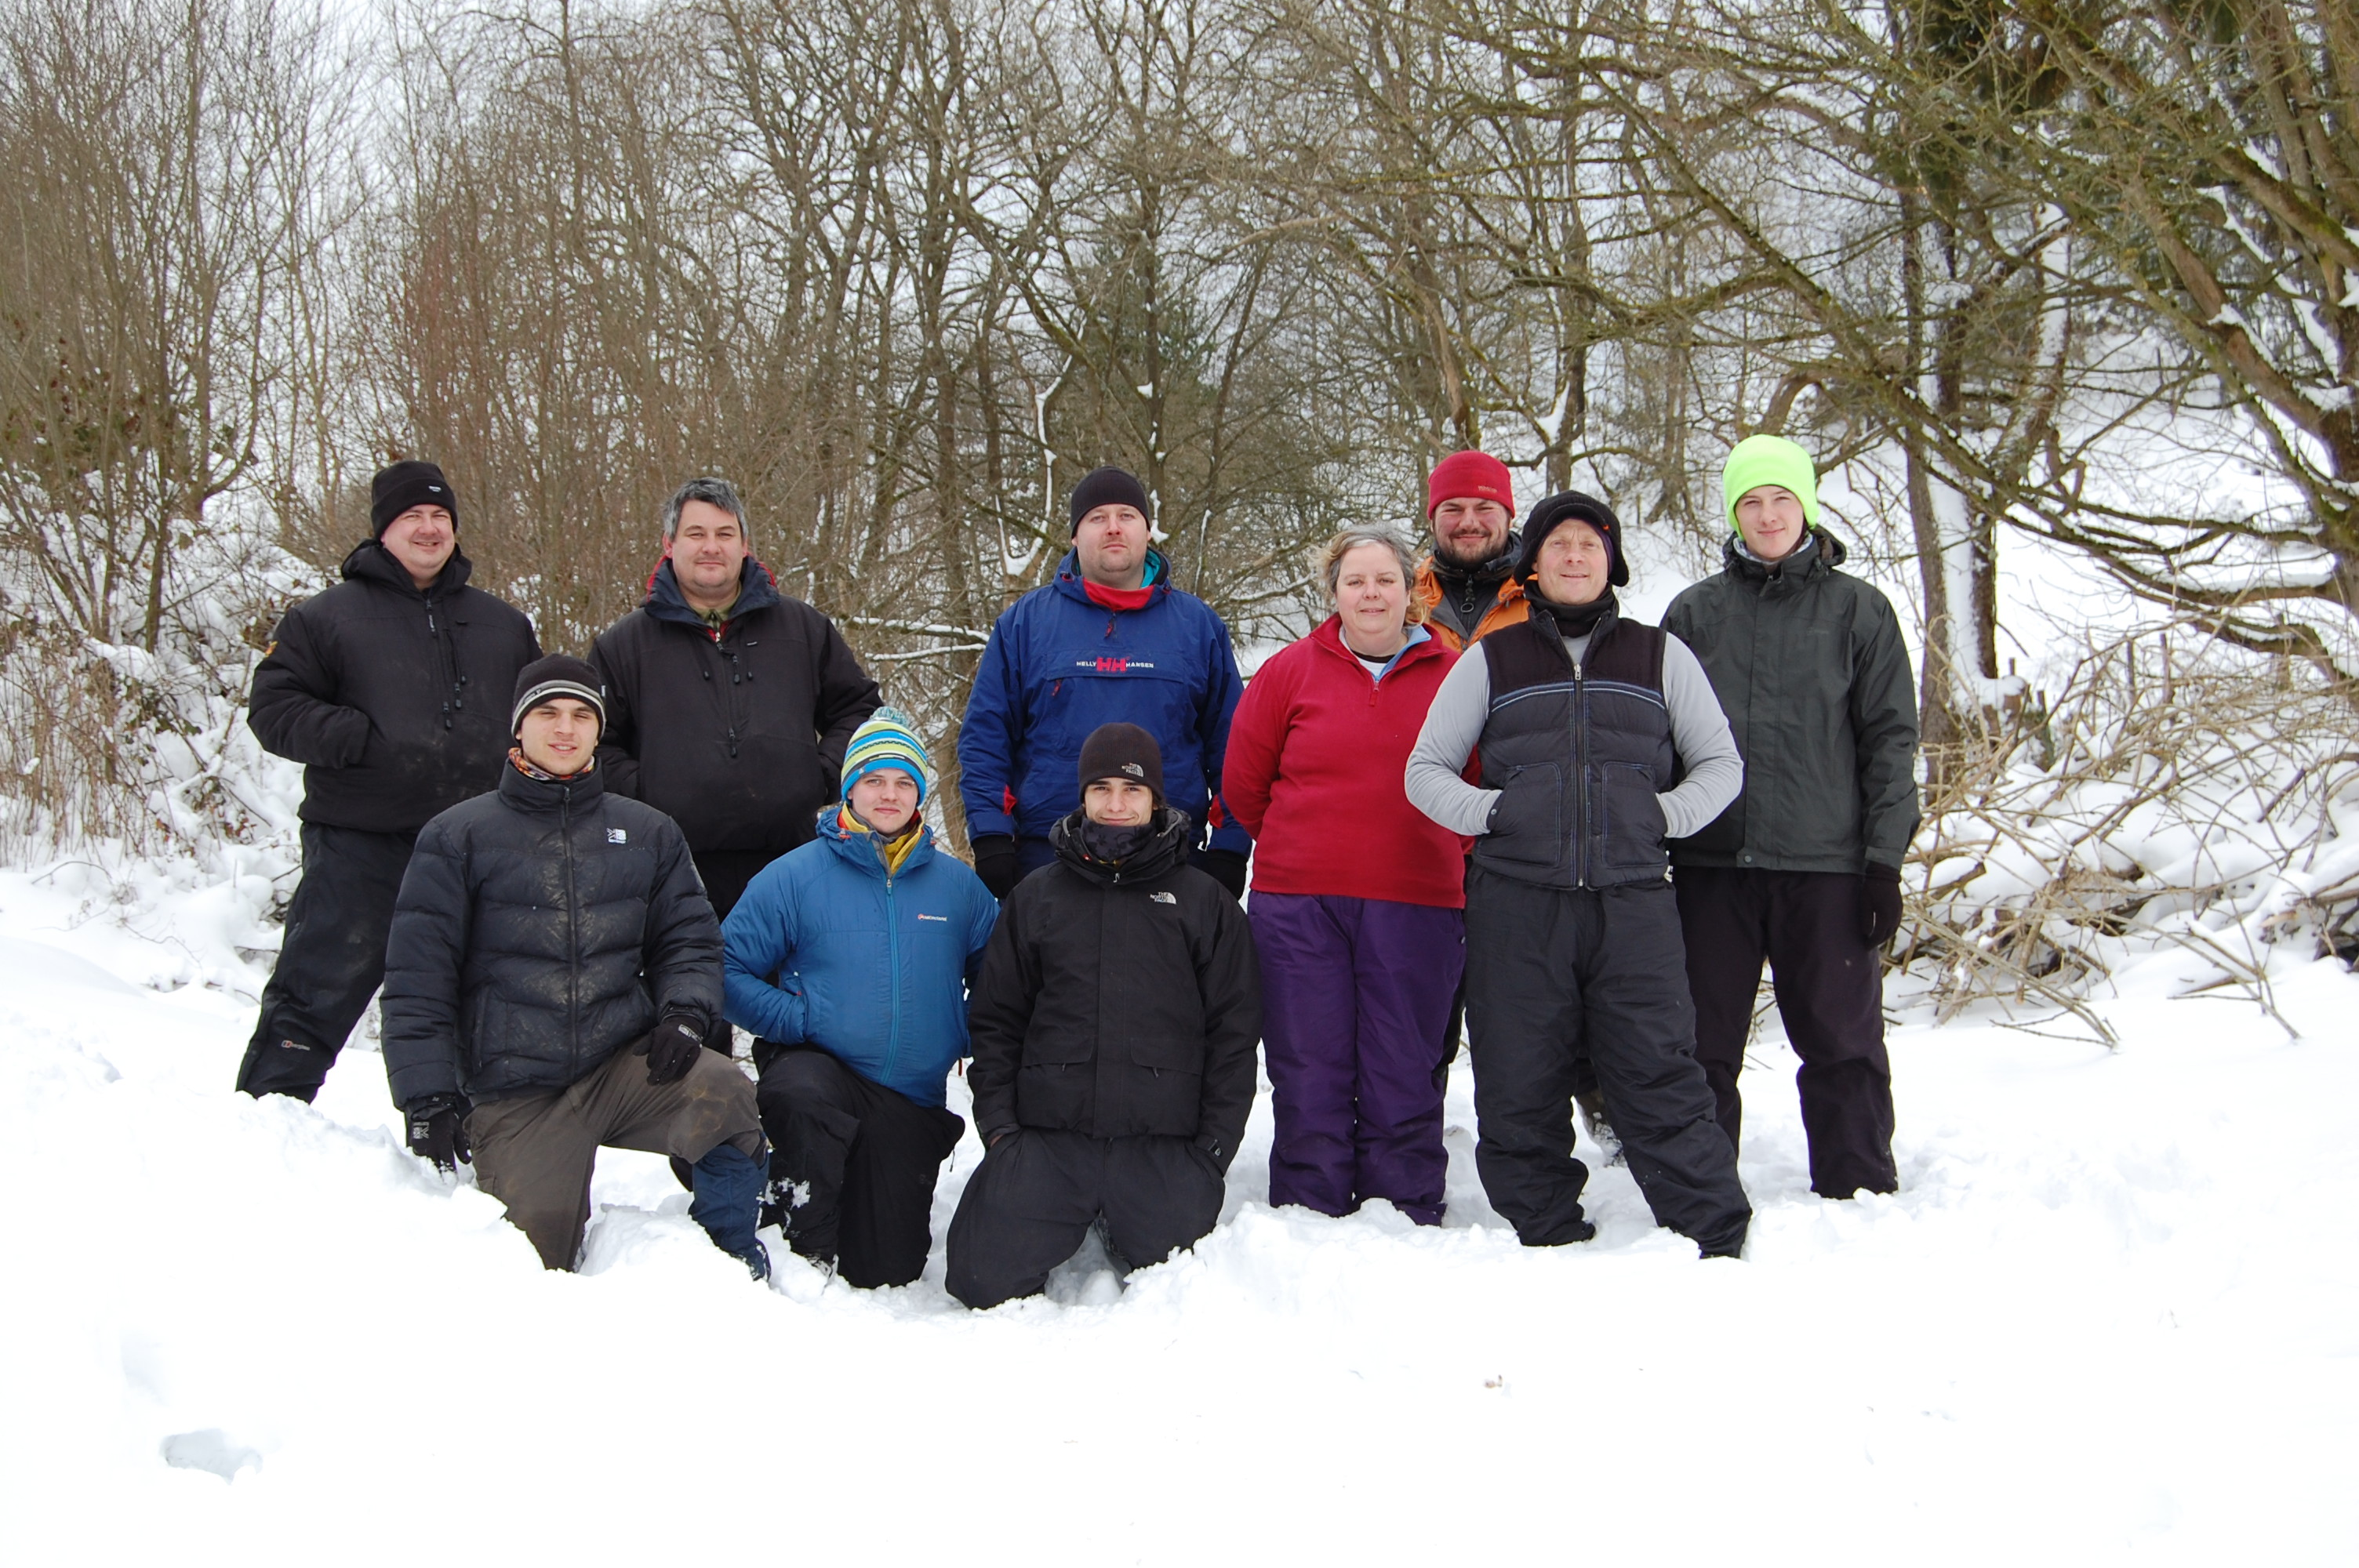 First Aid Course in North Wales